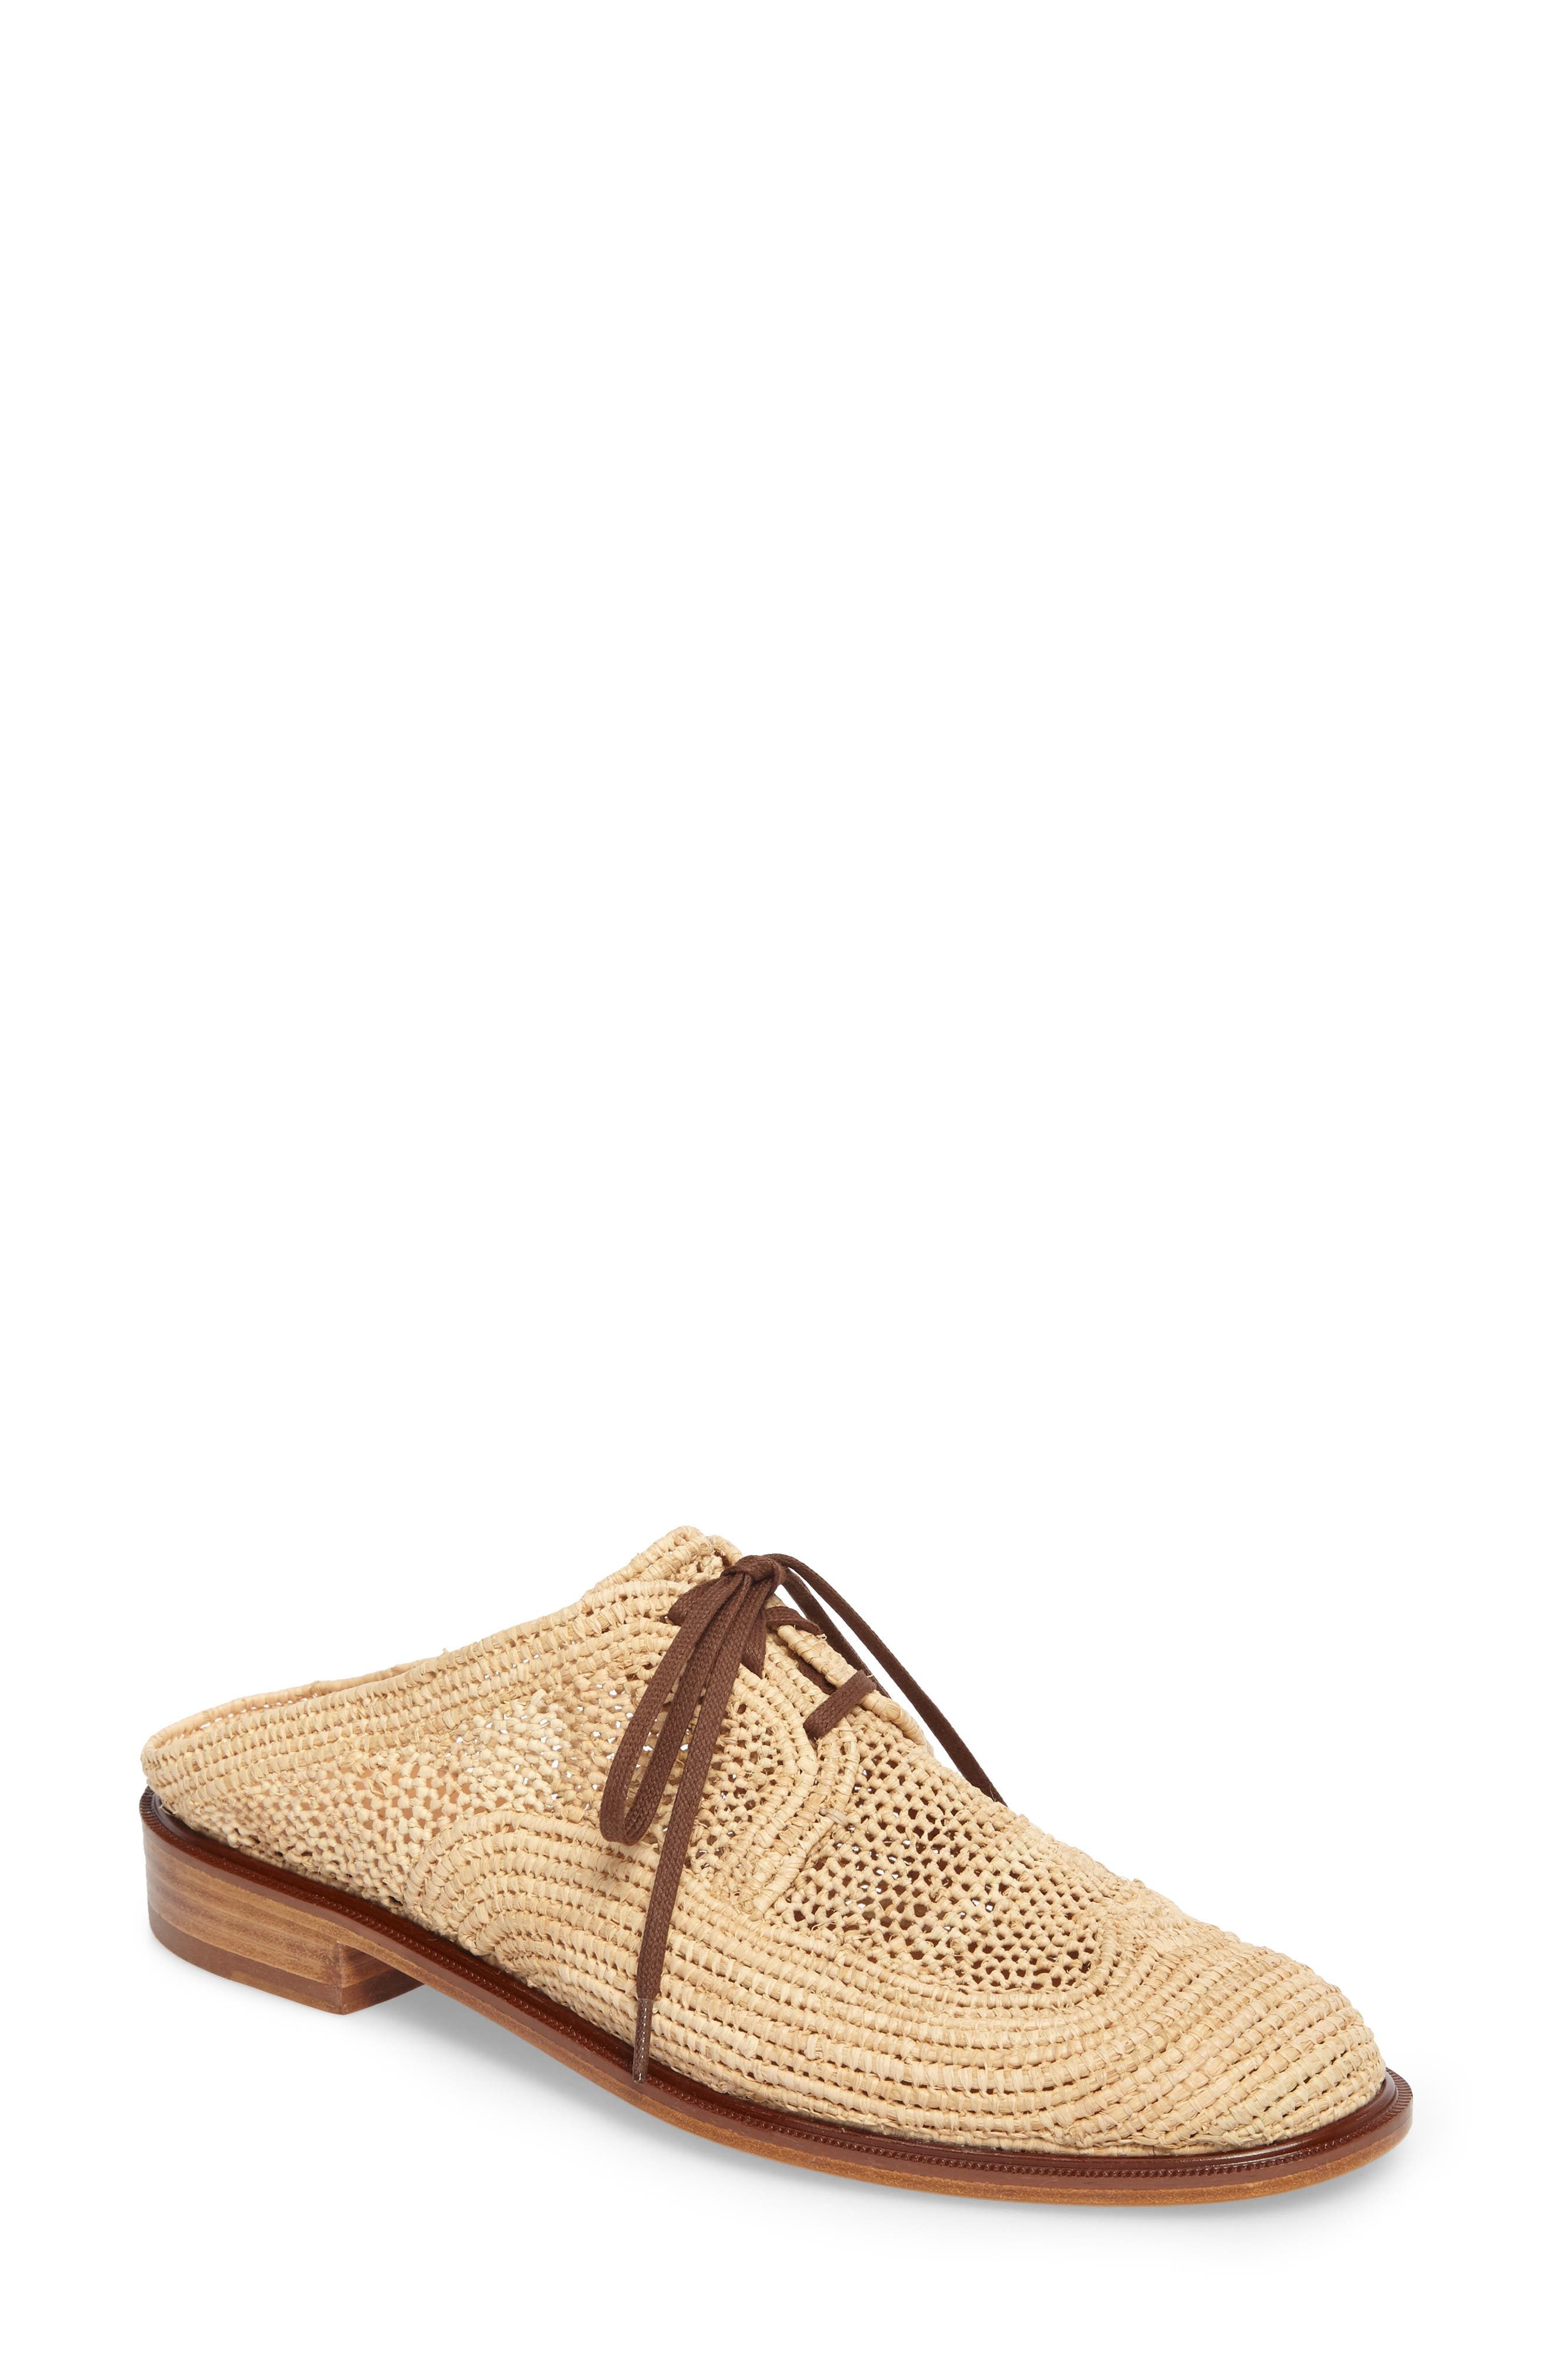 Jaly Woven Loafer Mule,                             Main thumbnail 1, color,                             250